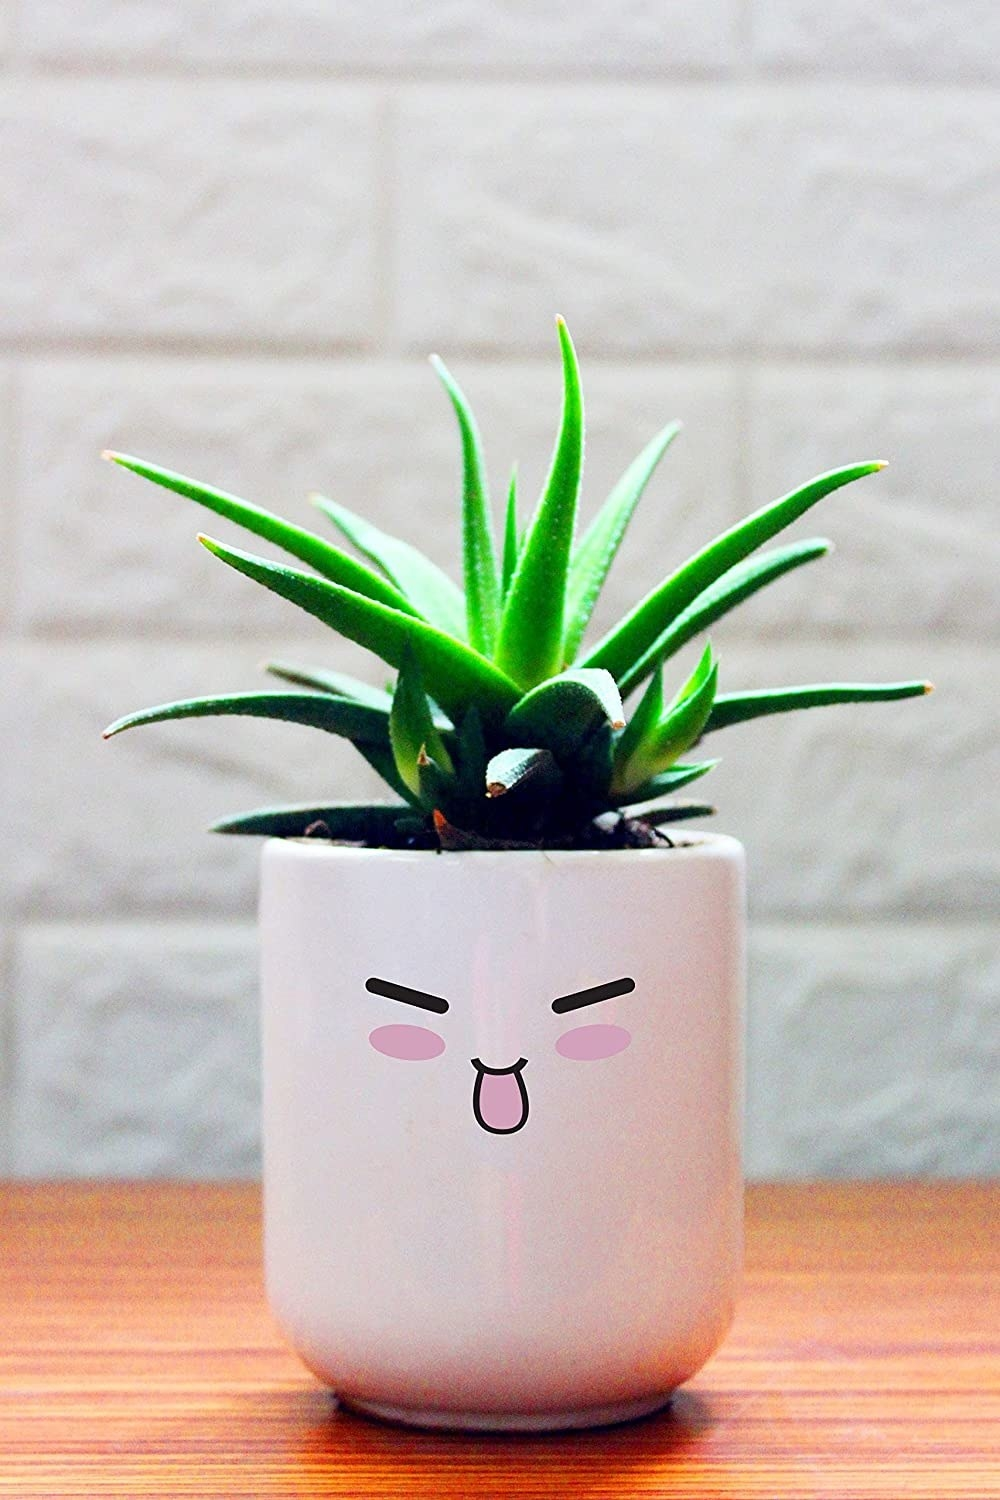 A Haworthia Fasciata in a white ceramic planter with an animated smiling face